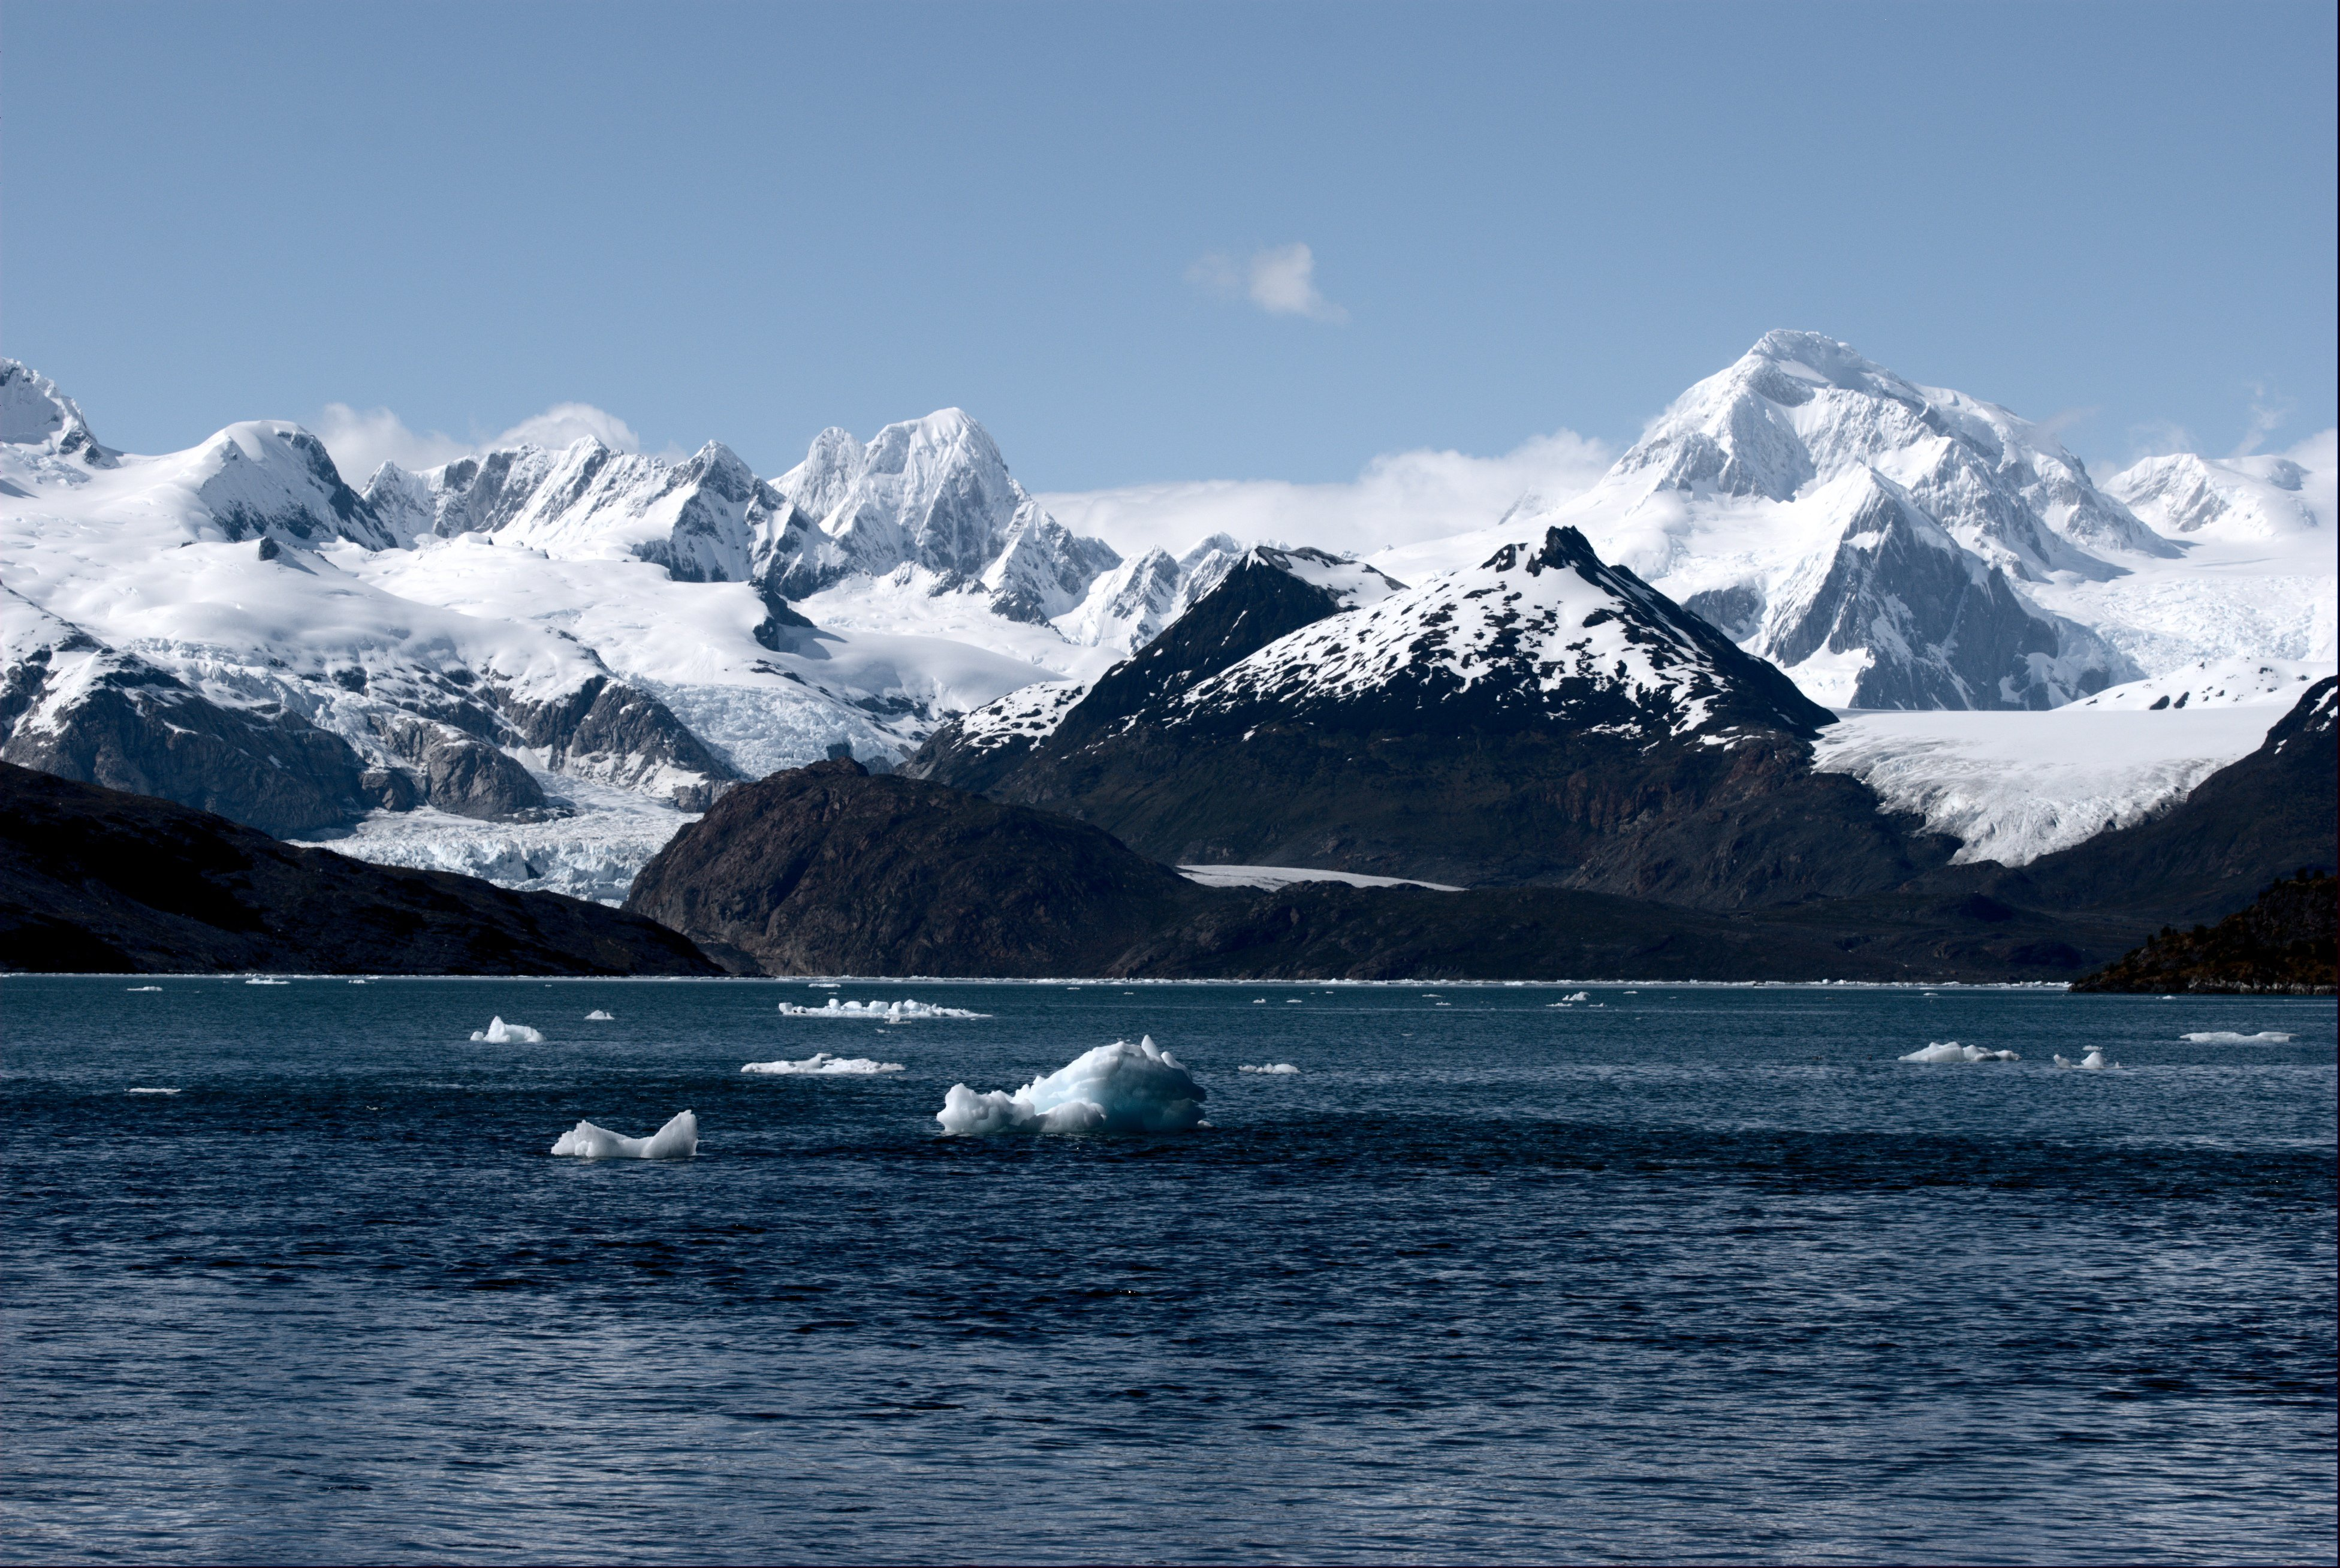 View of the Marinelli Glacier from Ainsworth Bay in southern Chile taken in December 2009.